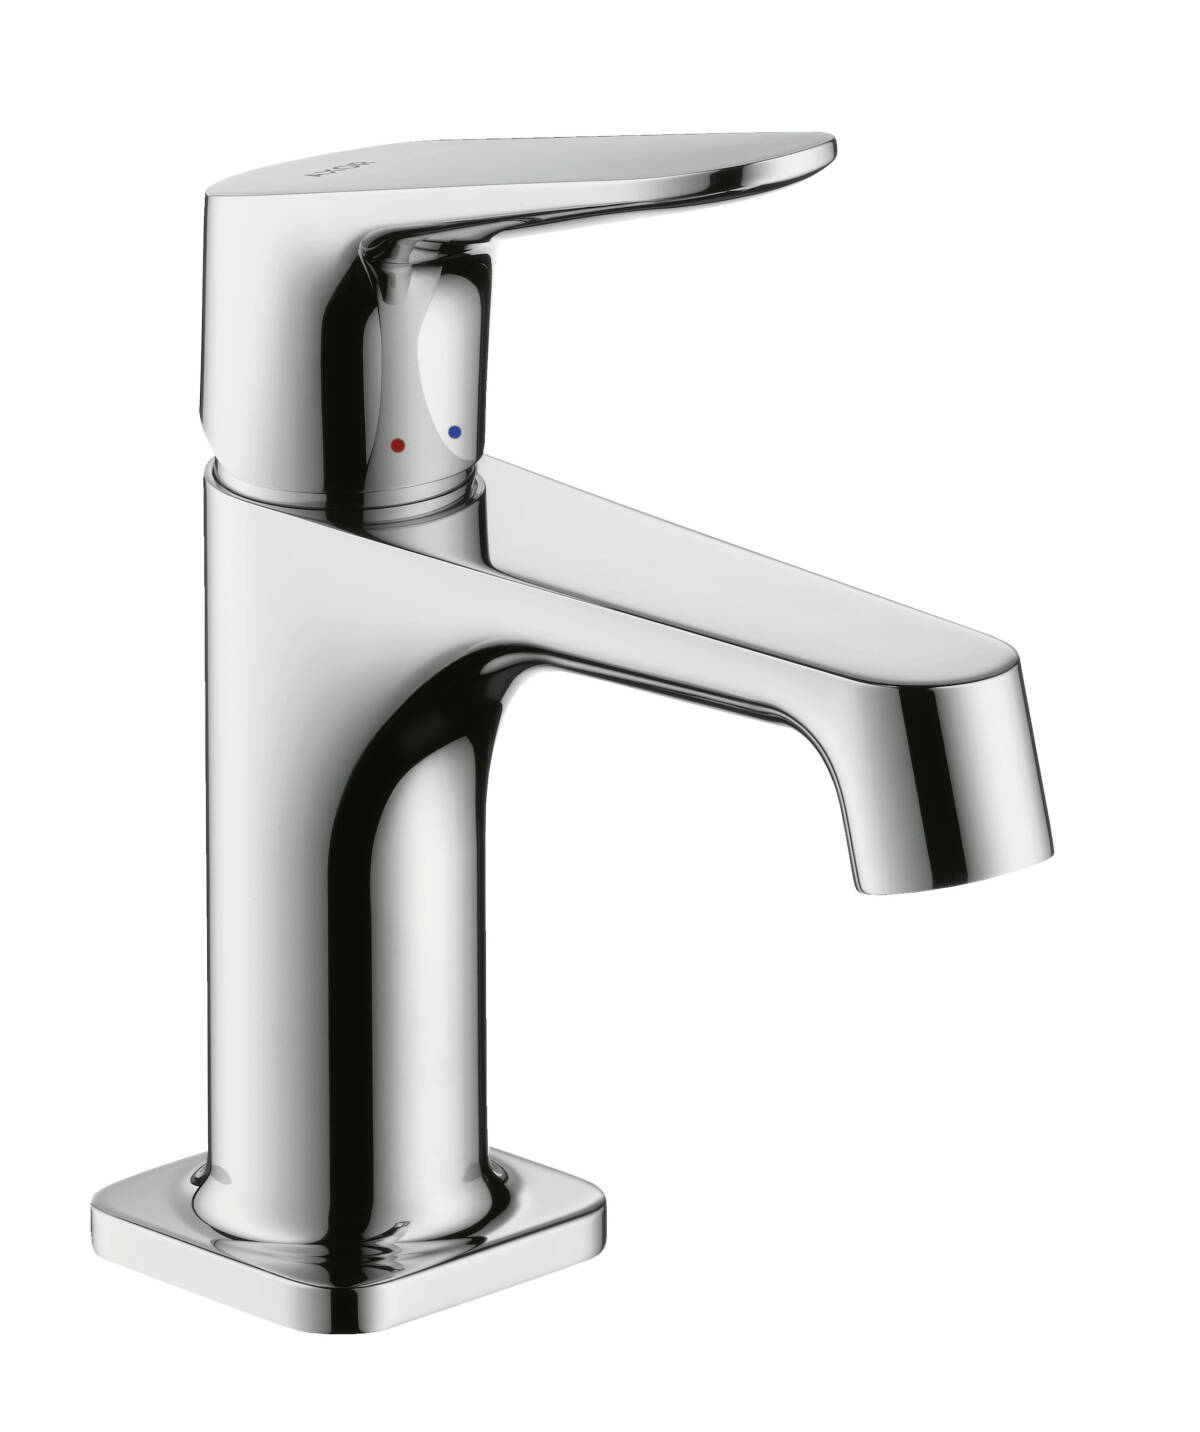 Single lever basin mixer 70 for hand washbasins with pop-up waste set, Brushed Black Chrome, 34016340